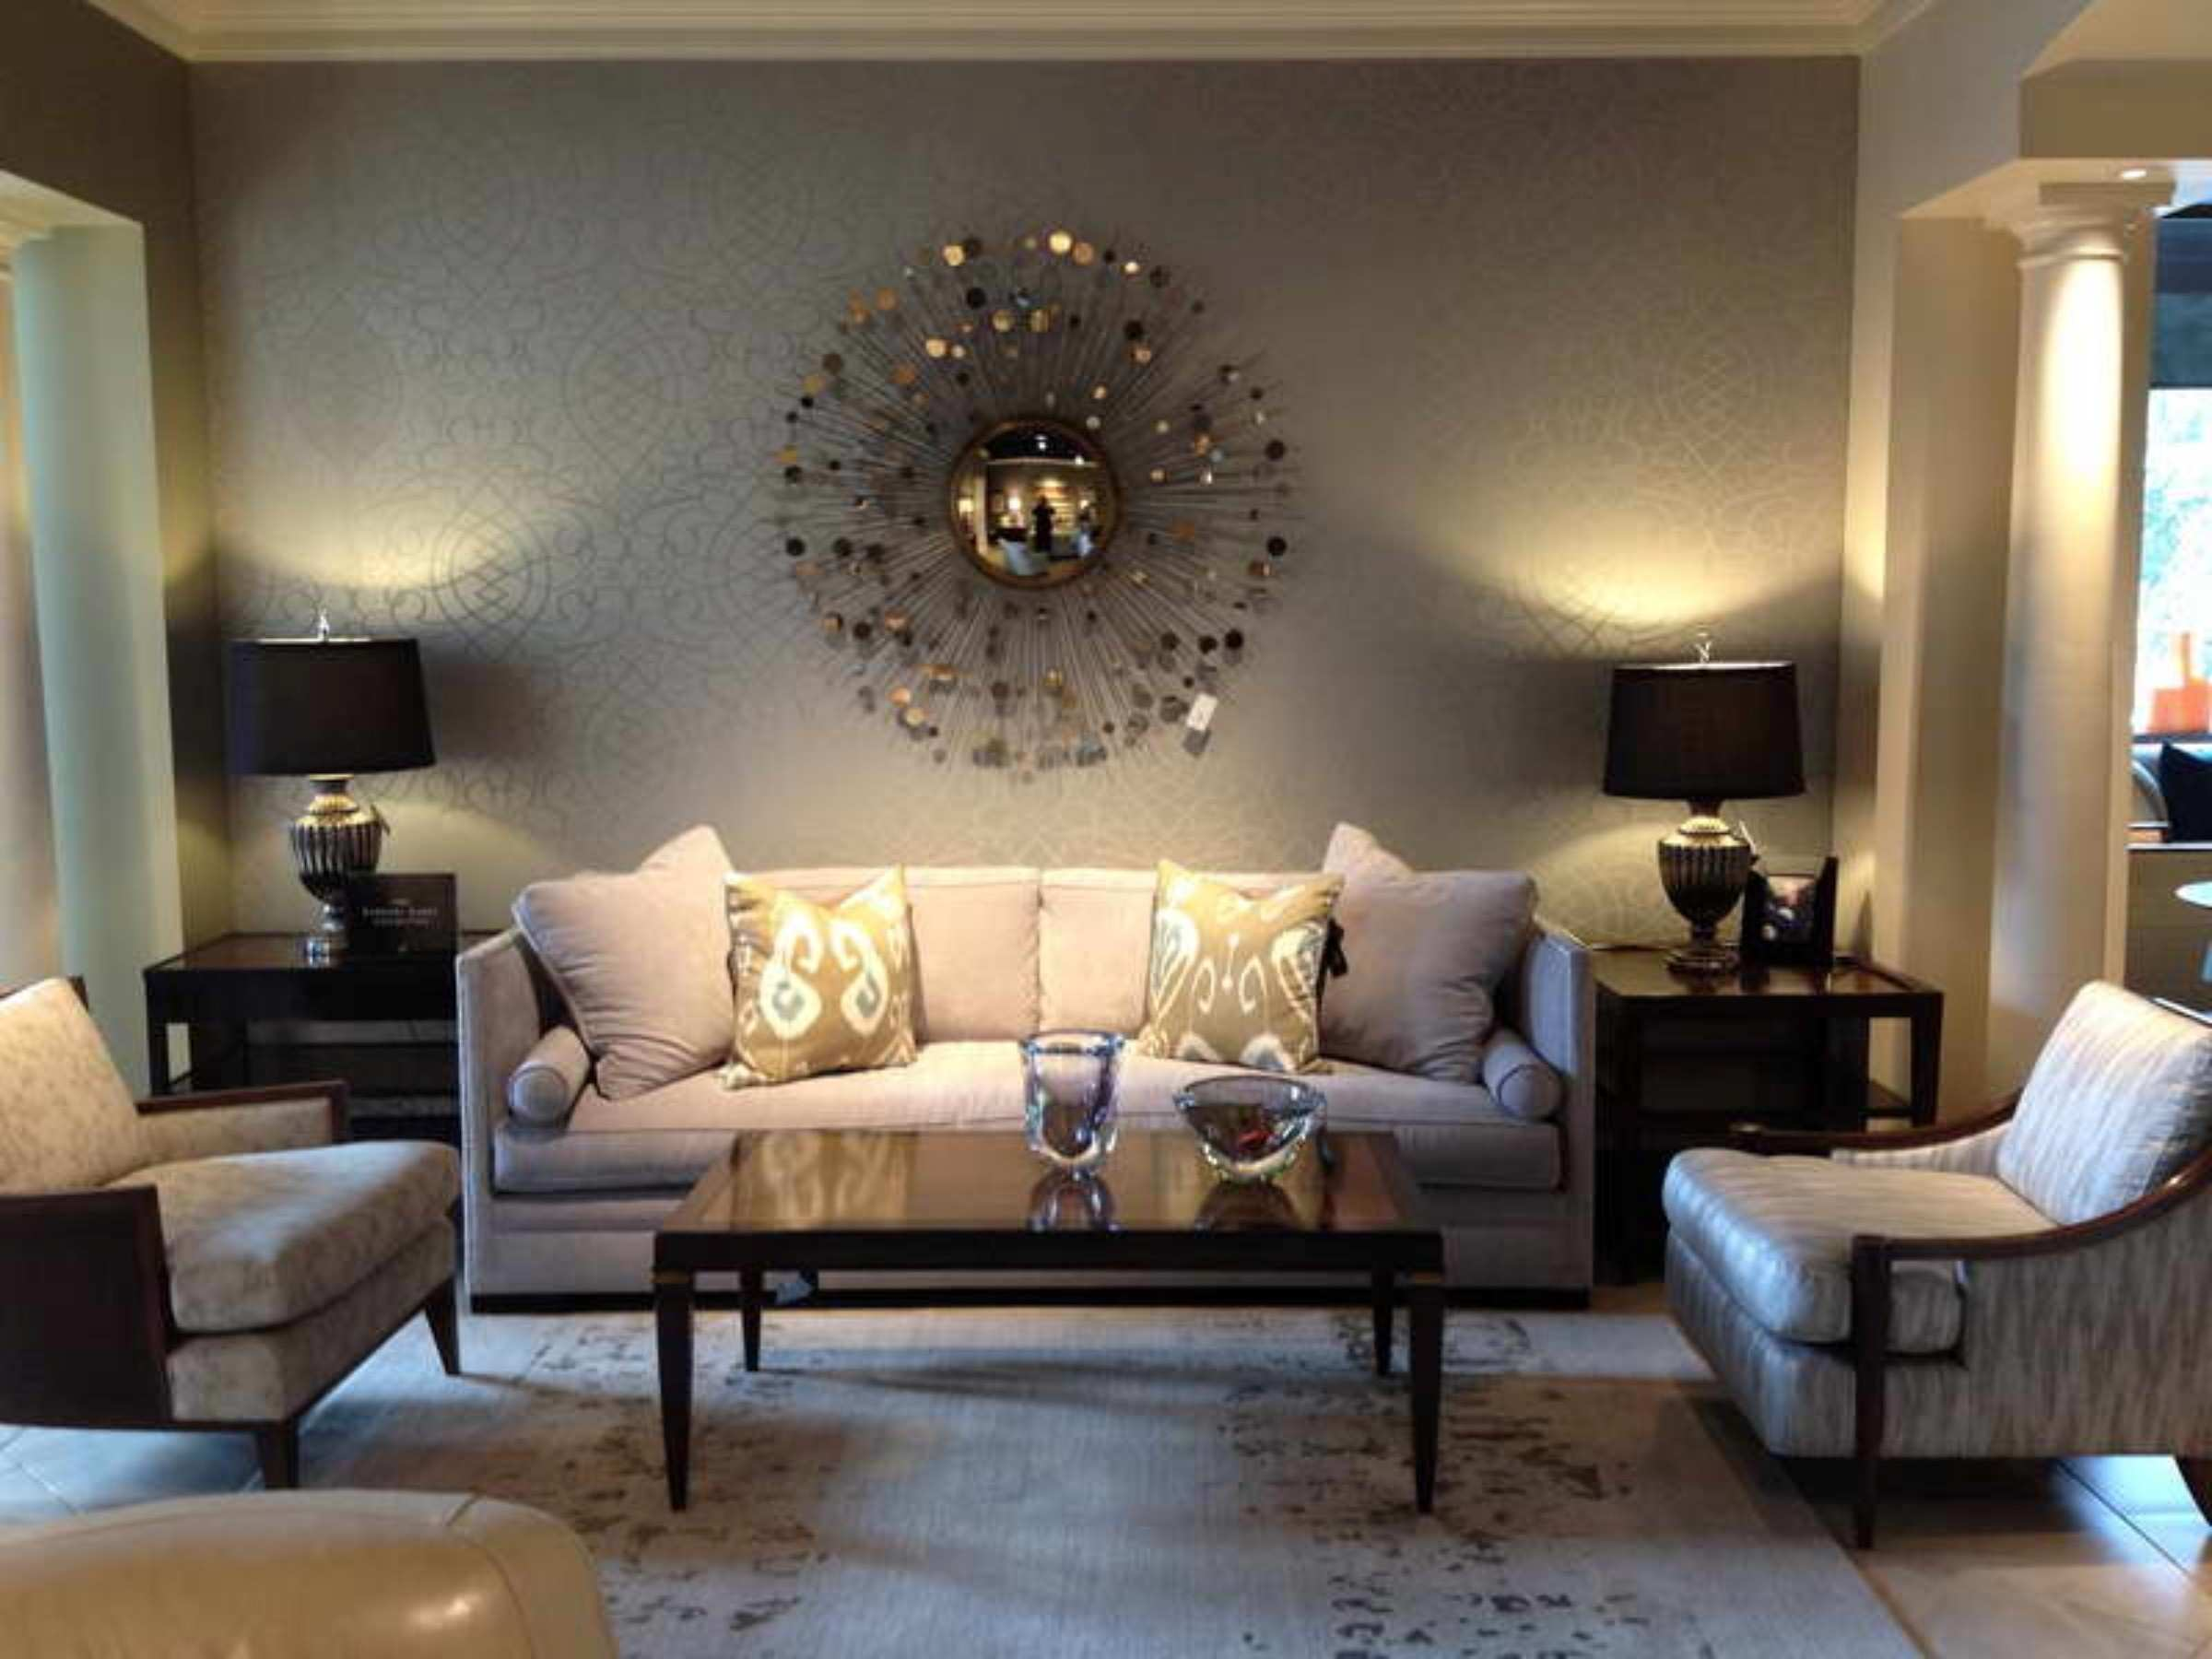 Wall Decorating Ideas for Living Room